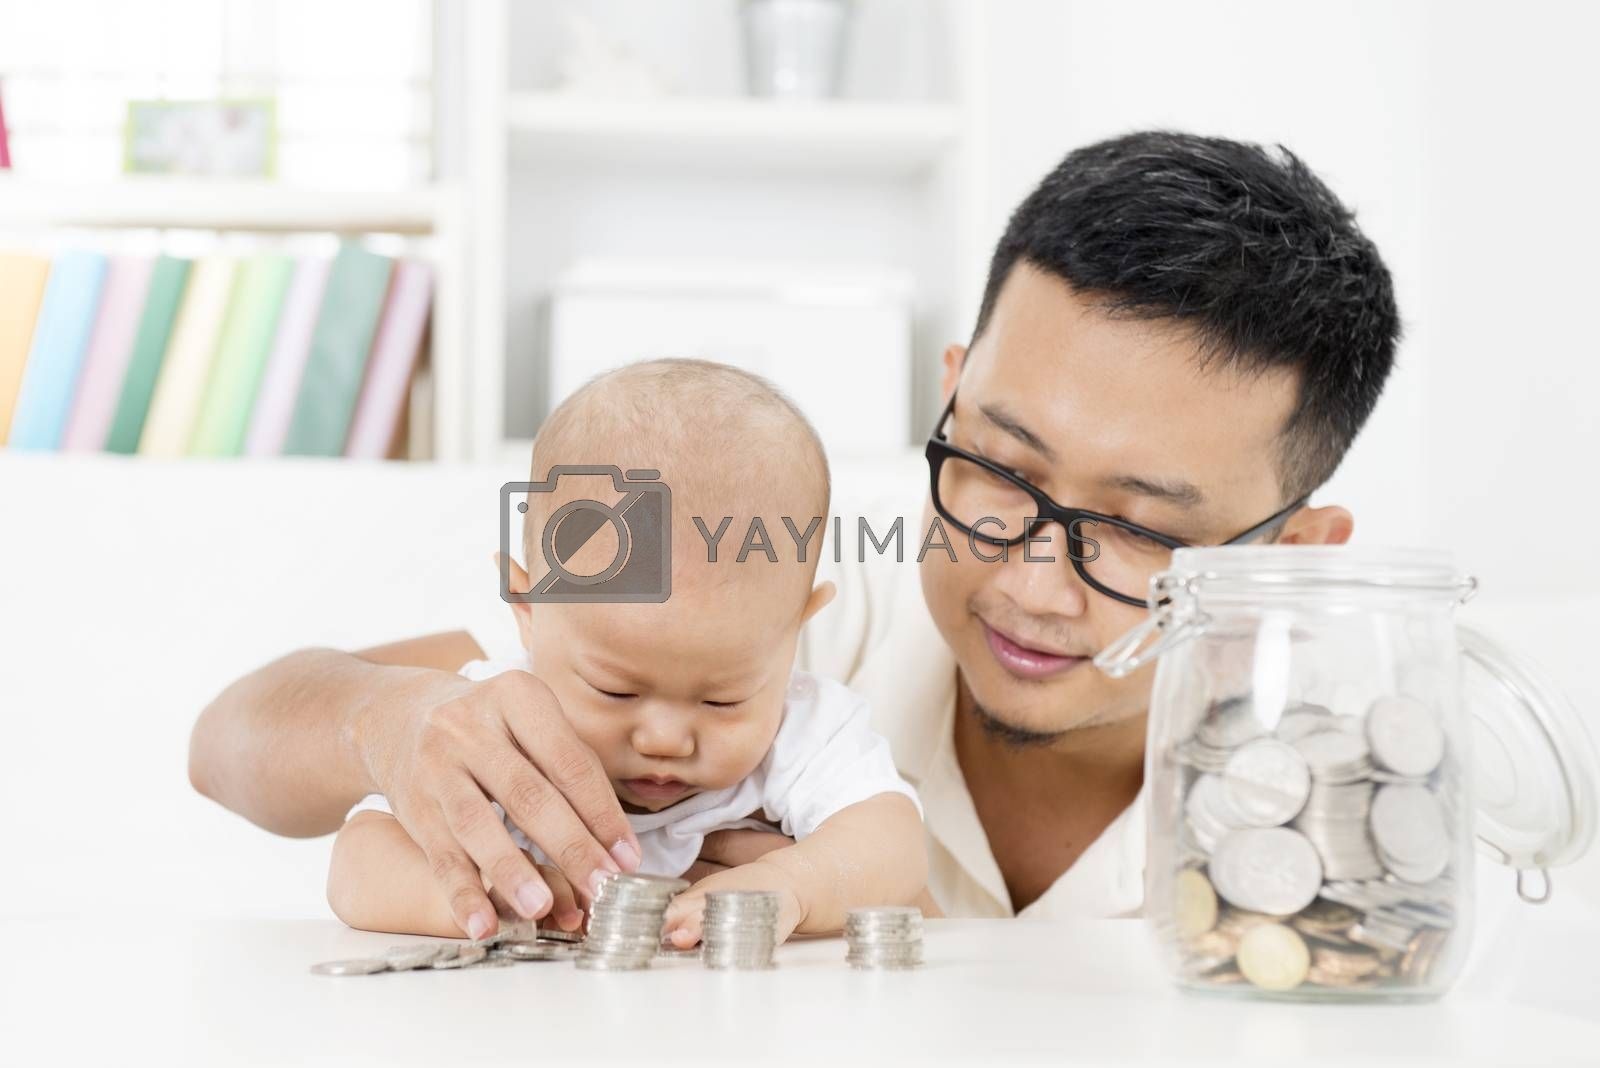 Asian family lifestyle at home. Father and baby counting coins, future education planning concept.